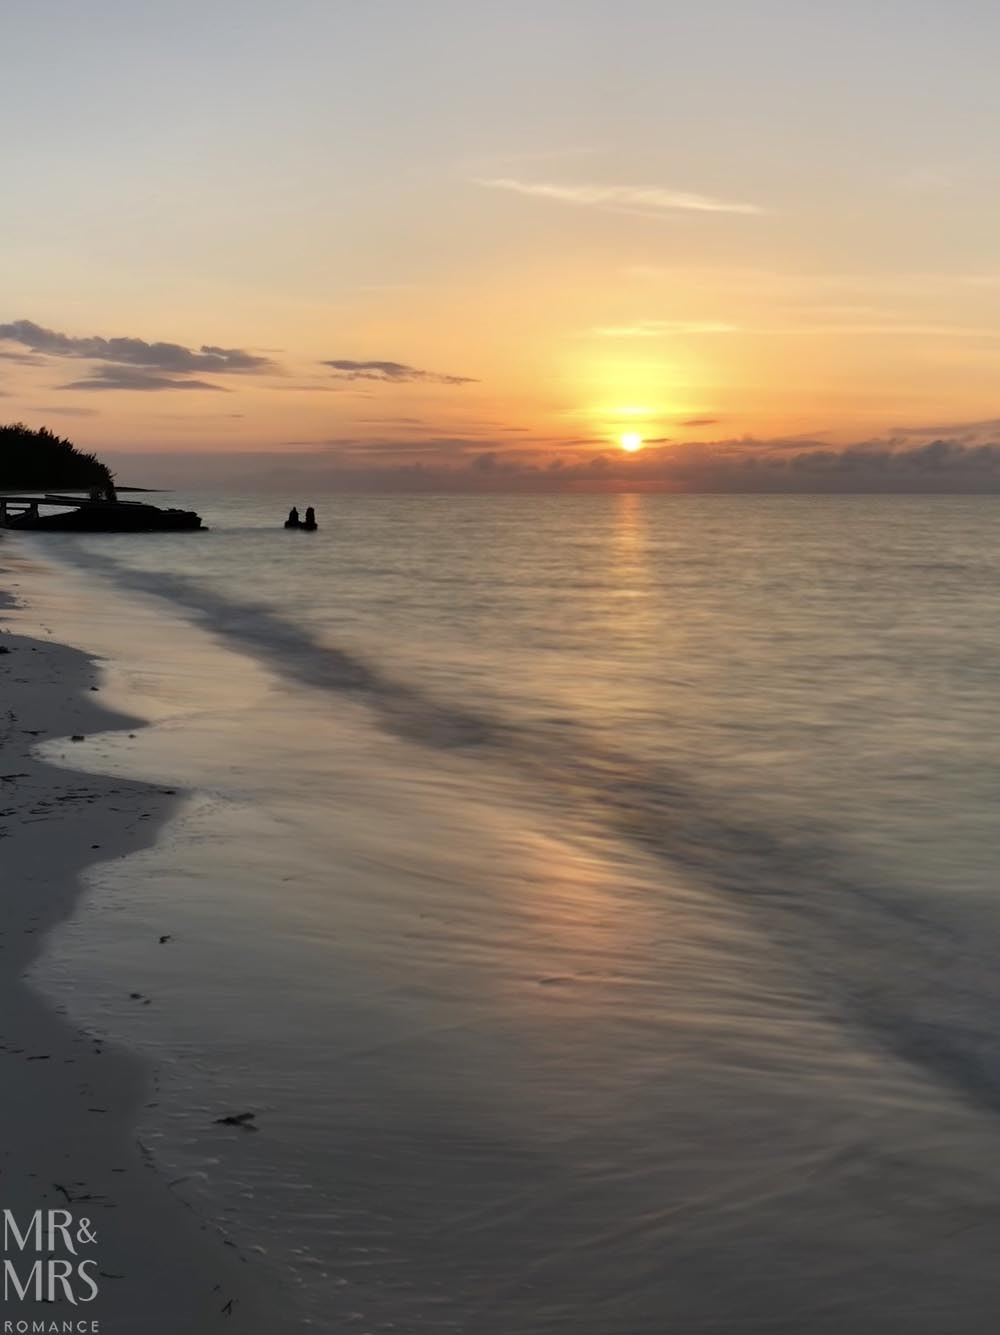 Cayo Levisa, Cuba at sunset